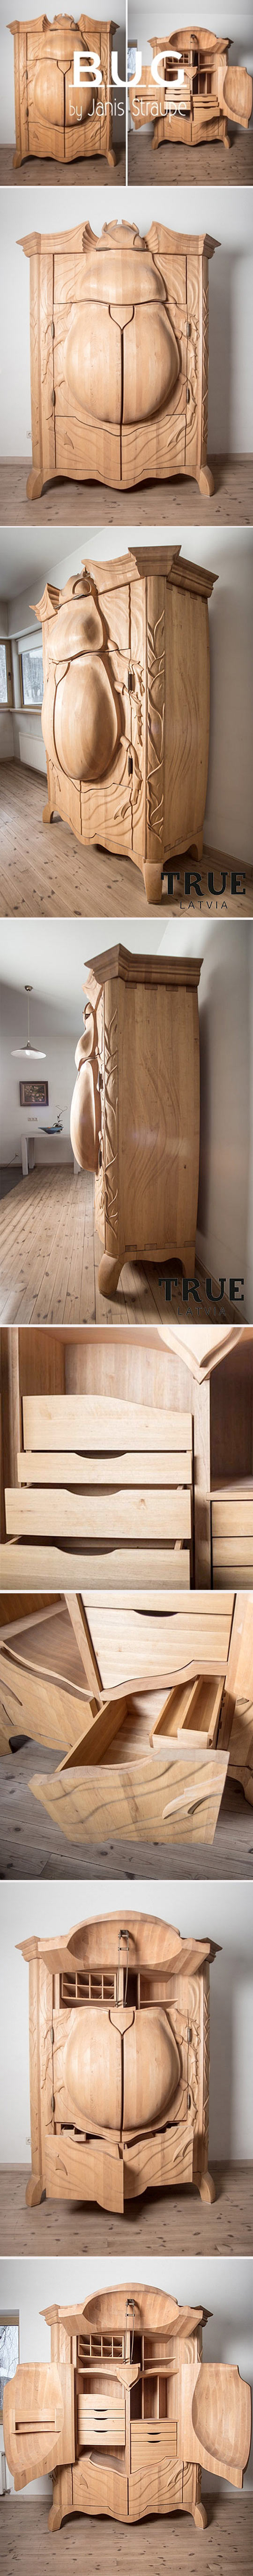 wood-beetle-cabinet-carved